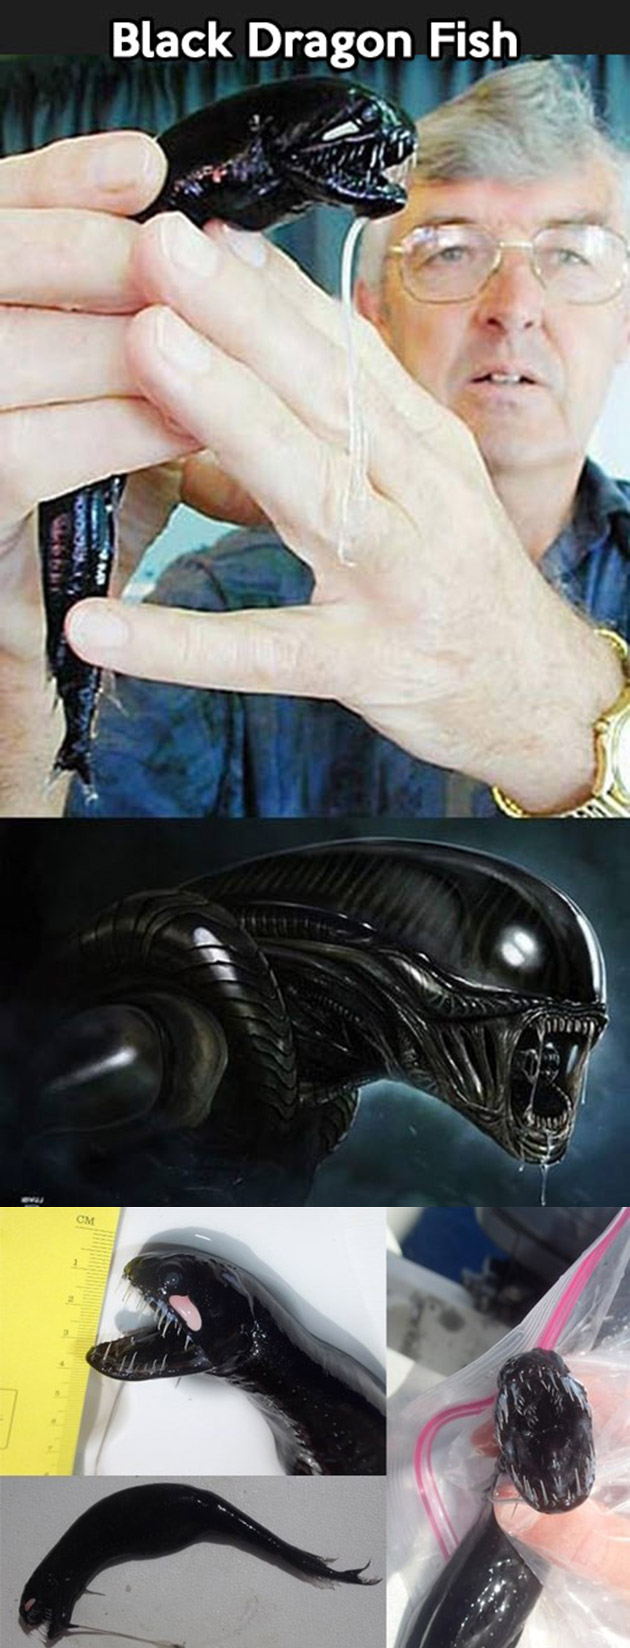 Black Dragonfish Alien